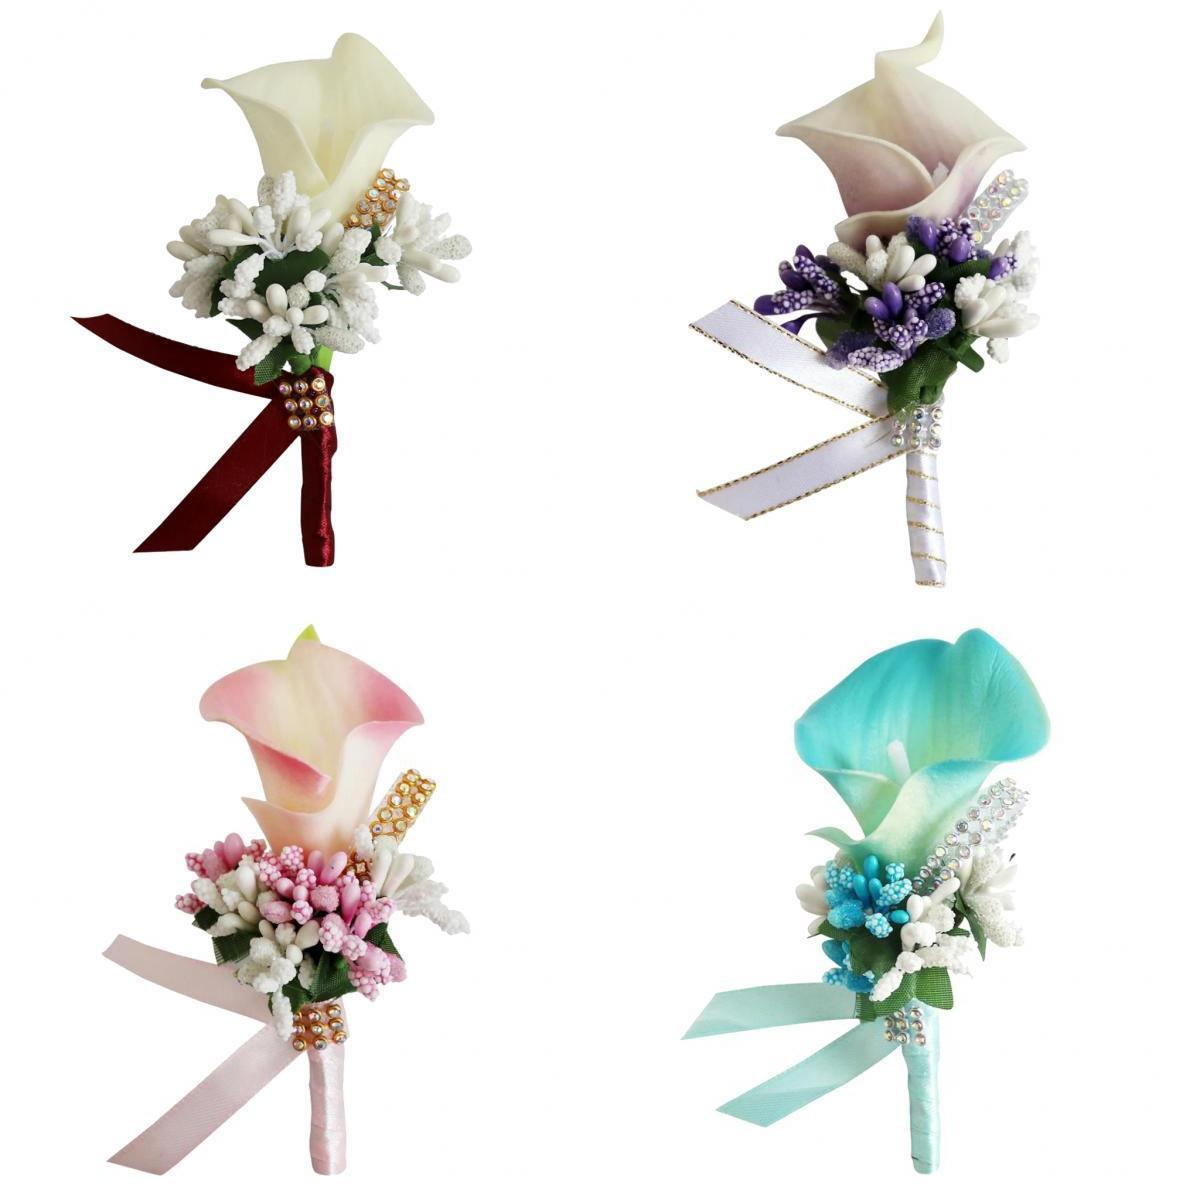 4pcs Flowers Wedding Wrist Flower Corsage with Rhinestone Wristband for Prom, Party, Wedding (4 Colors)